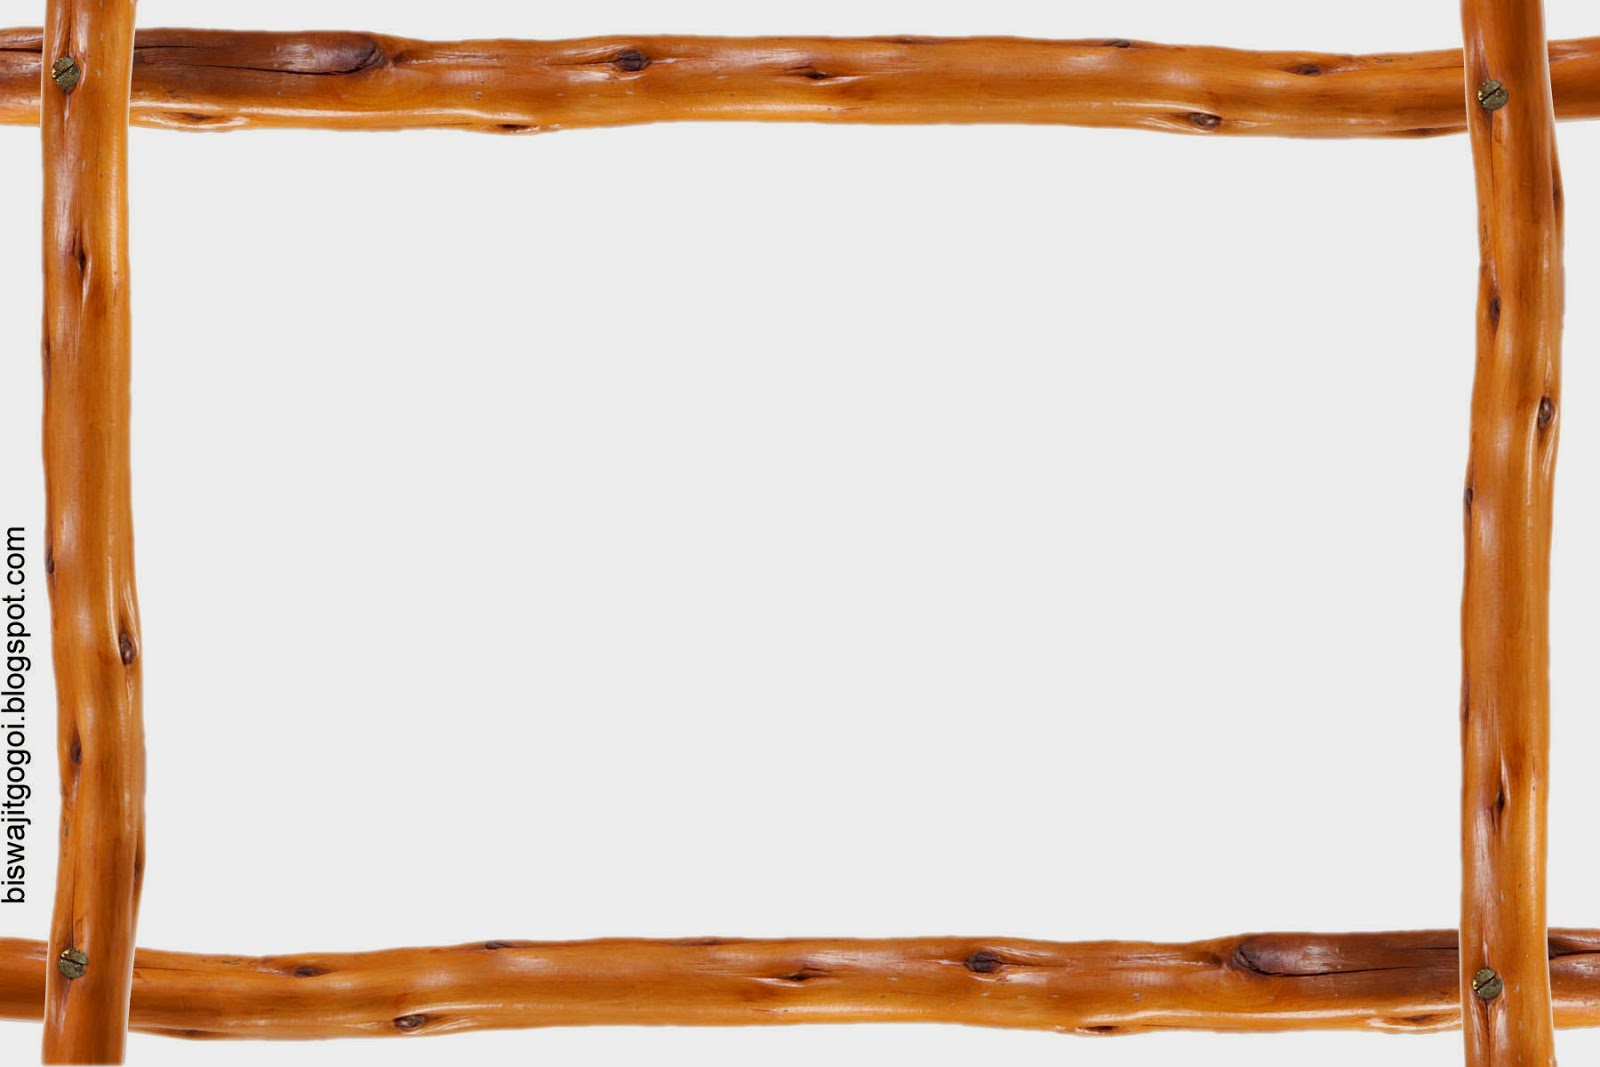 Boarder clipart wood. Free border cliparts download